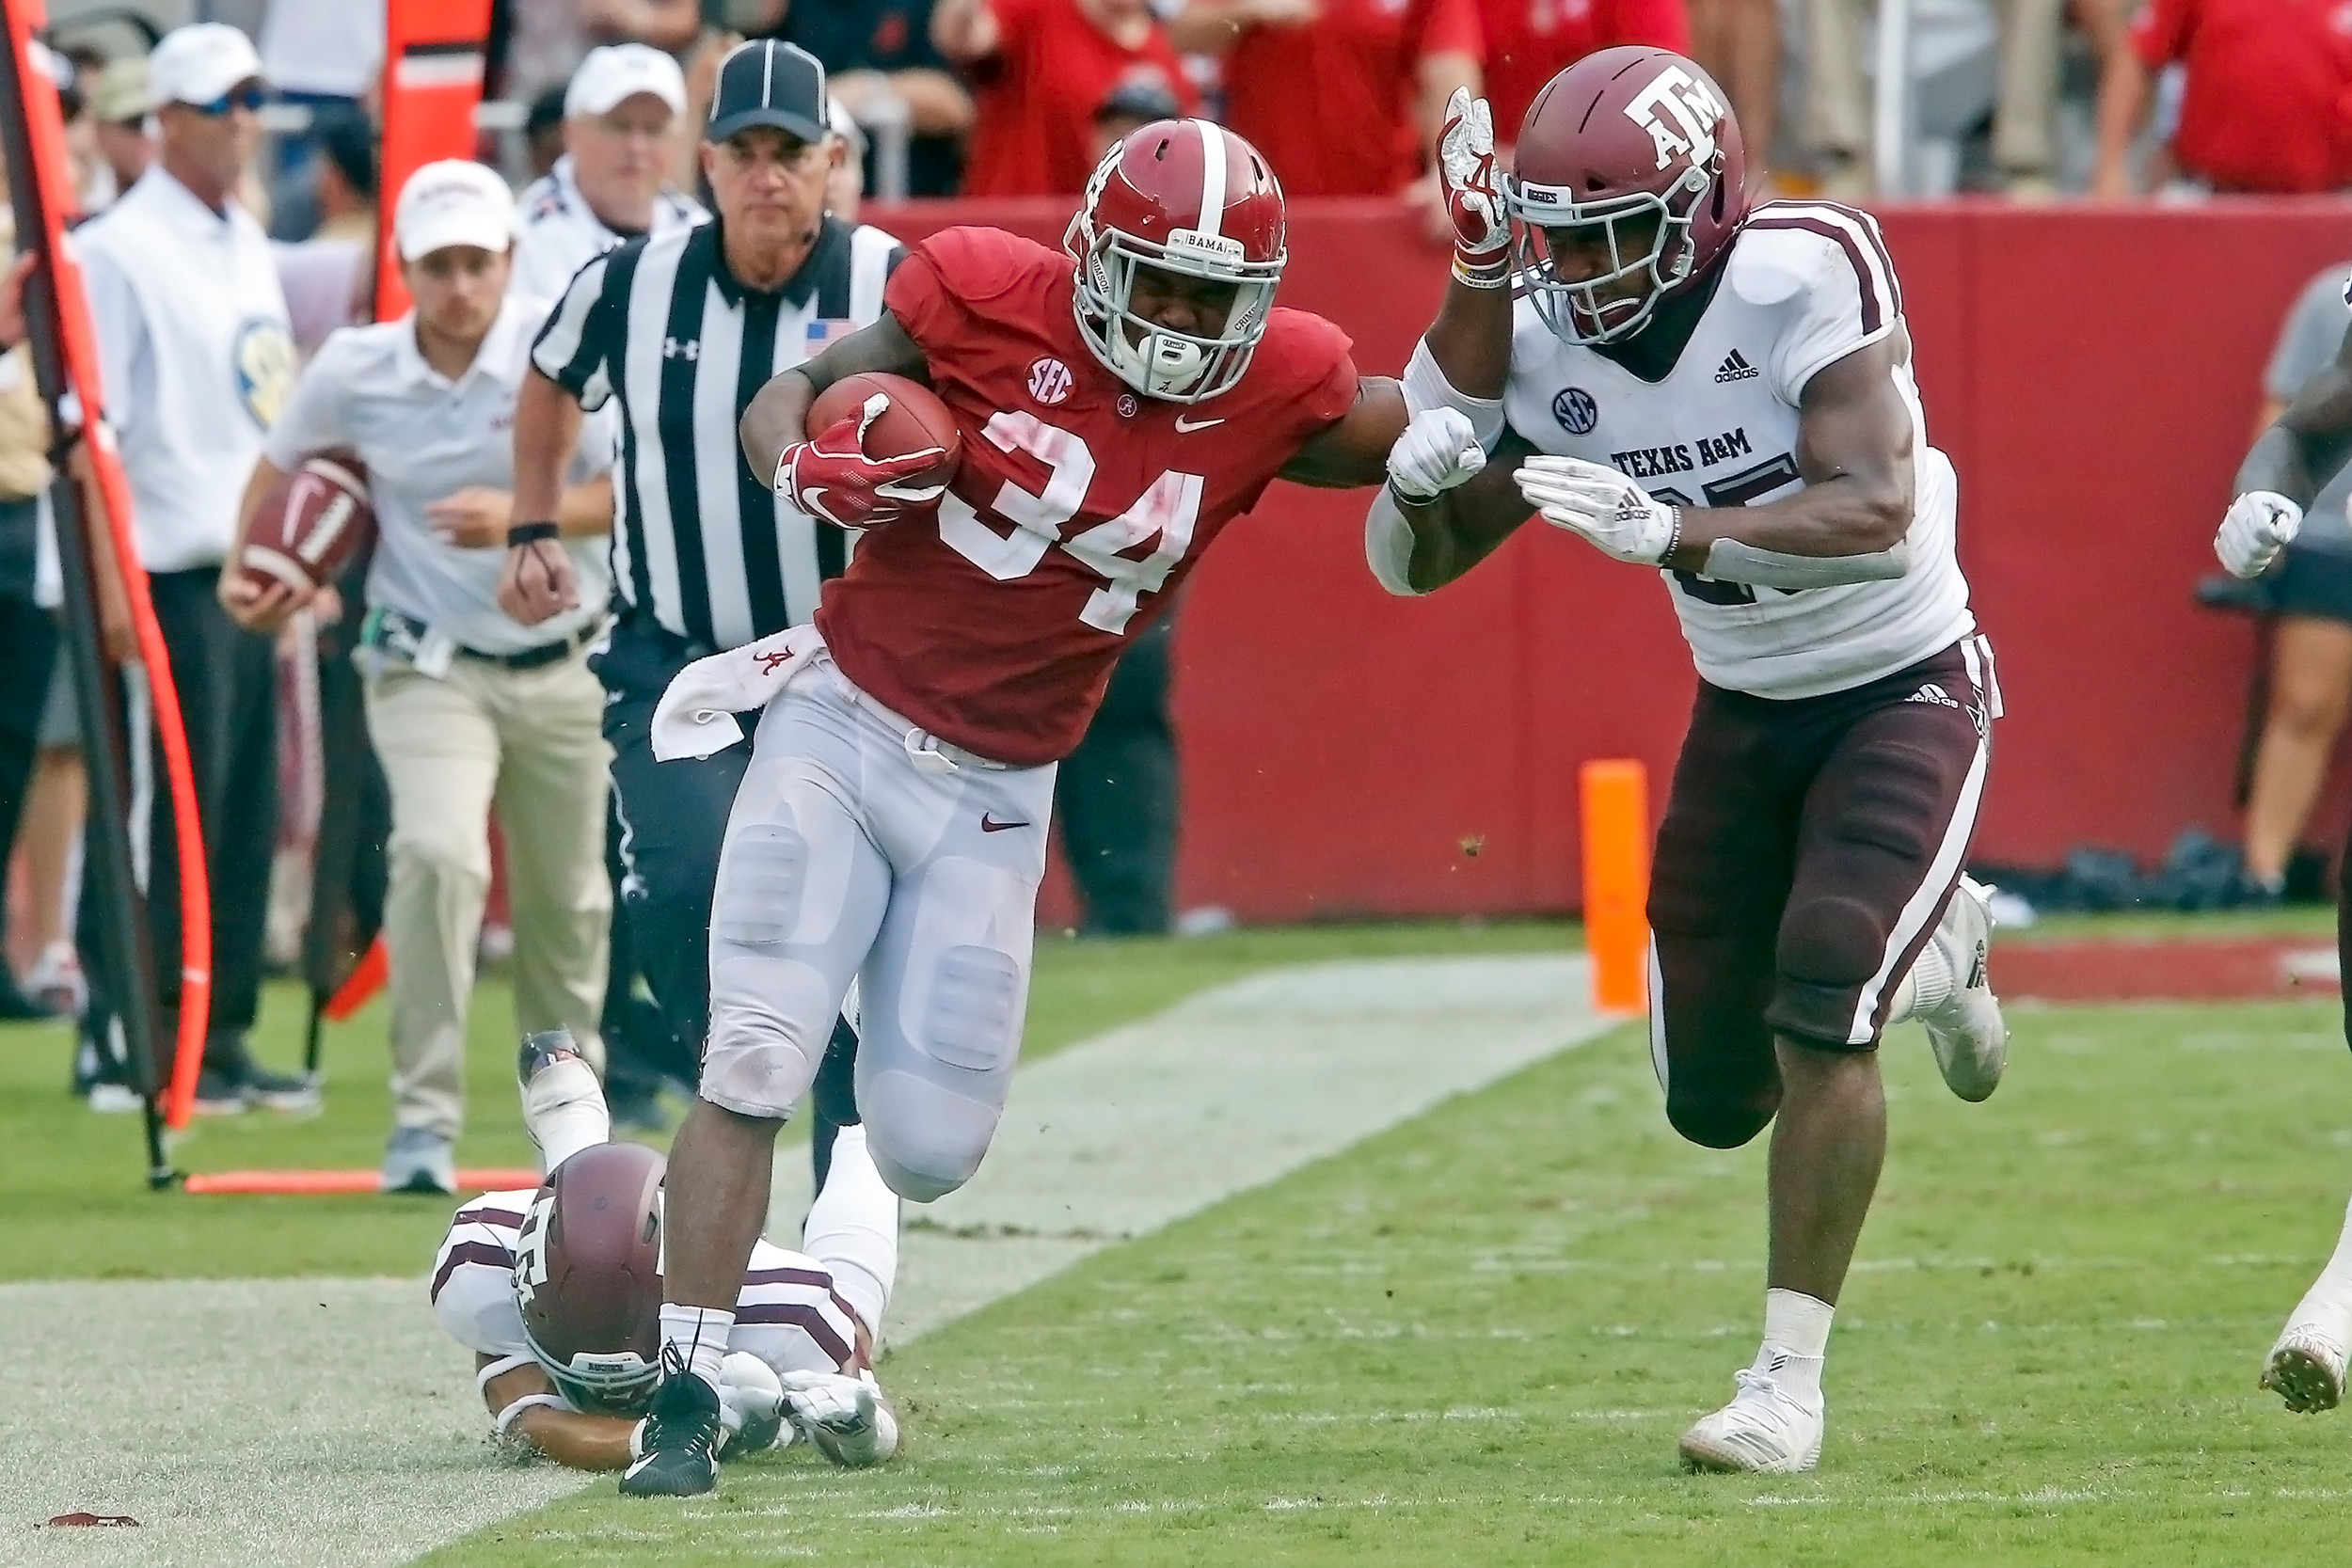 Alabama Crimson Tide running back Damien Harris (34) rushes up the sideline after a swing pass during the game with against the Texas A&M Aggies at Bryant-Denny Stadium.  Jason Clark / Daily Mountain Eagle